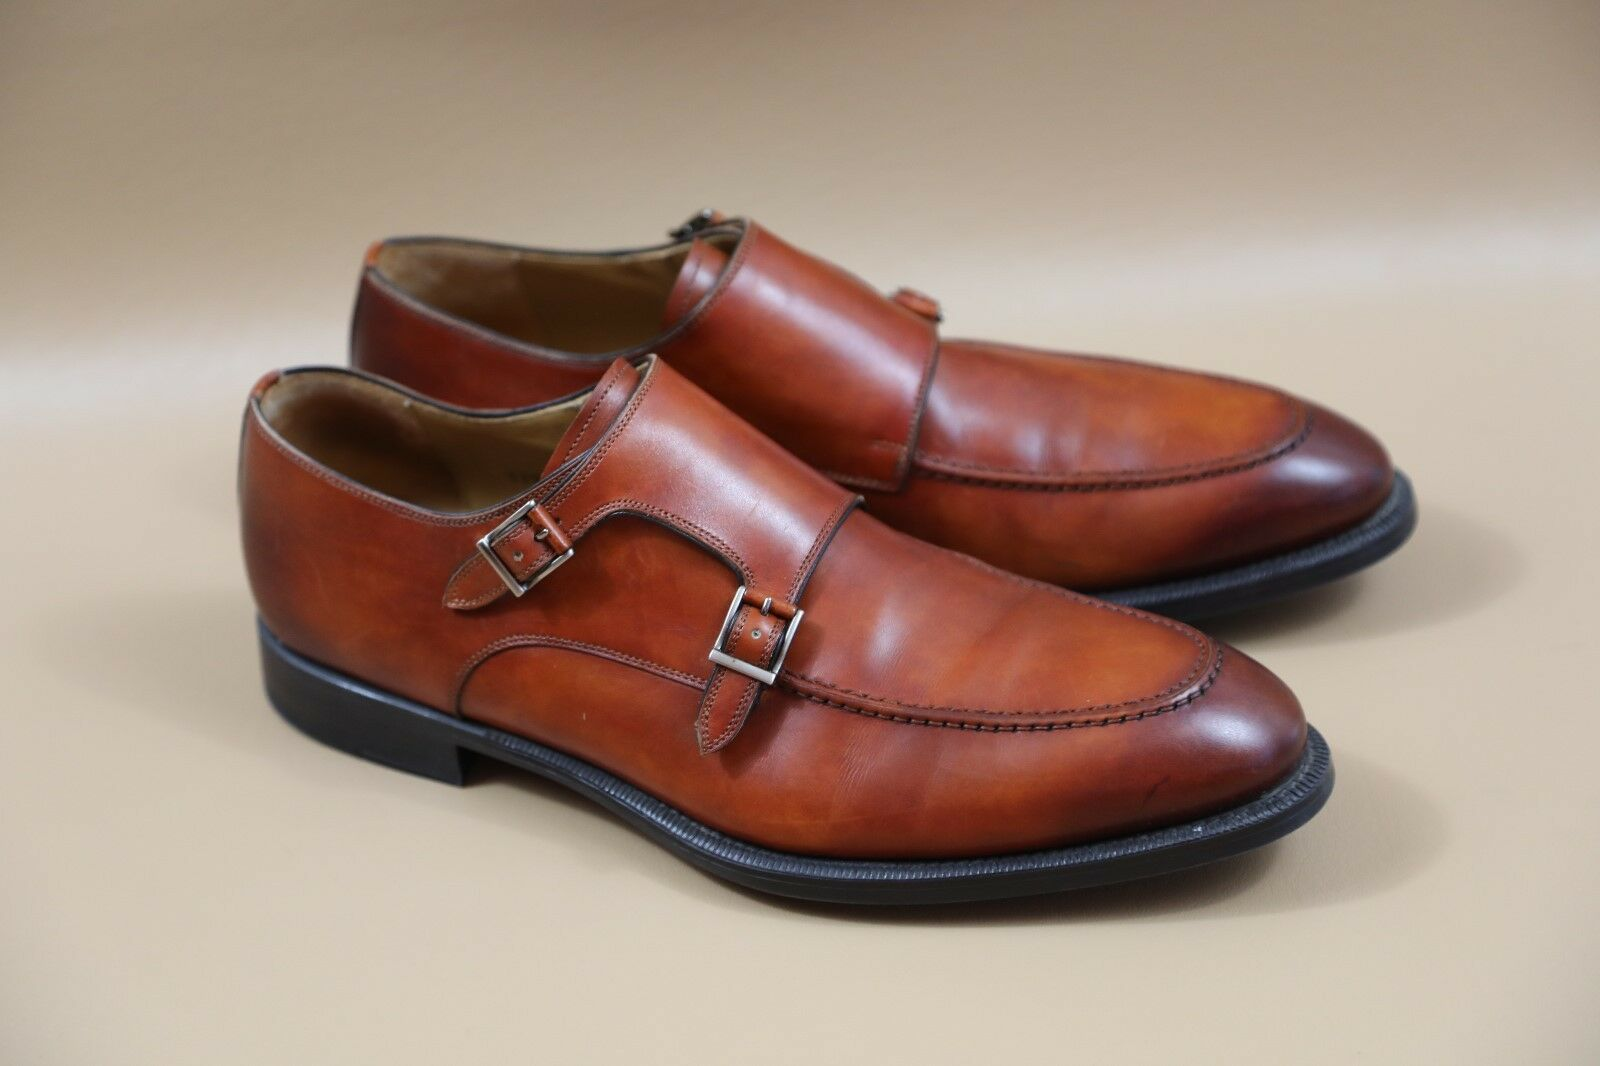 Magnanni 'Talbot' Double Strap shoes Size 10.5  RETAIL